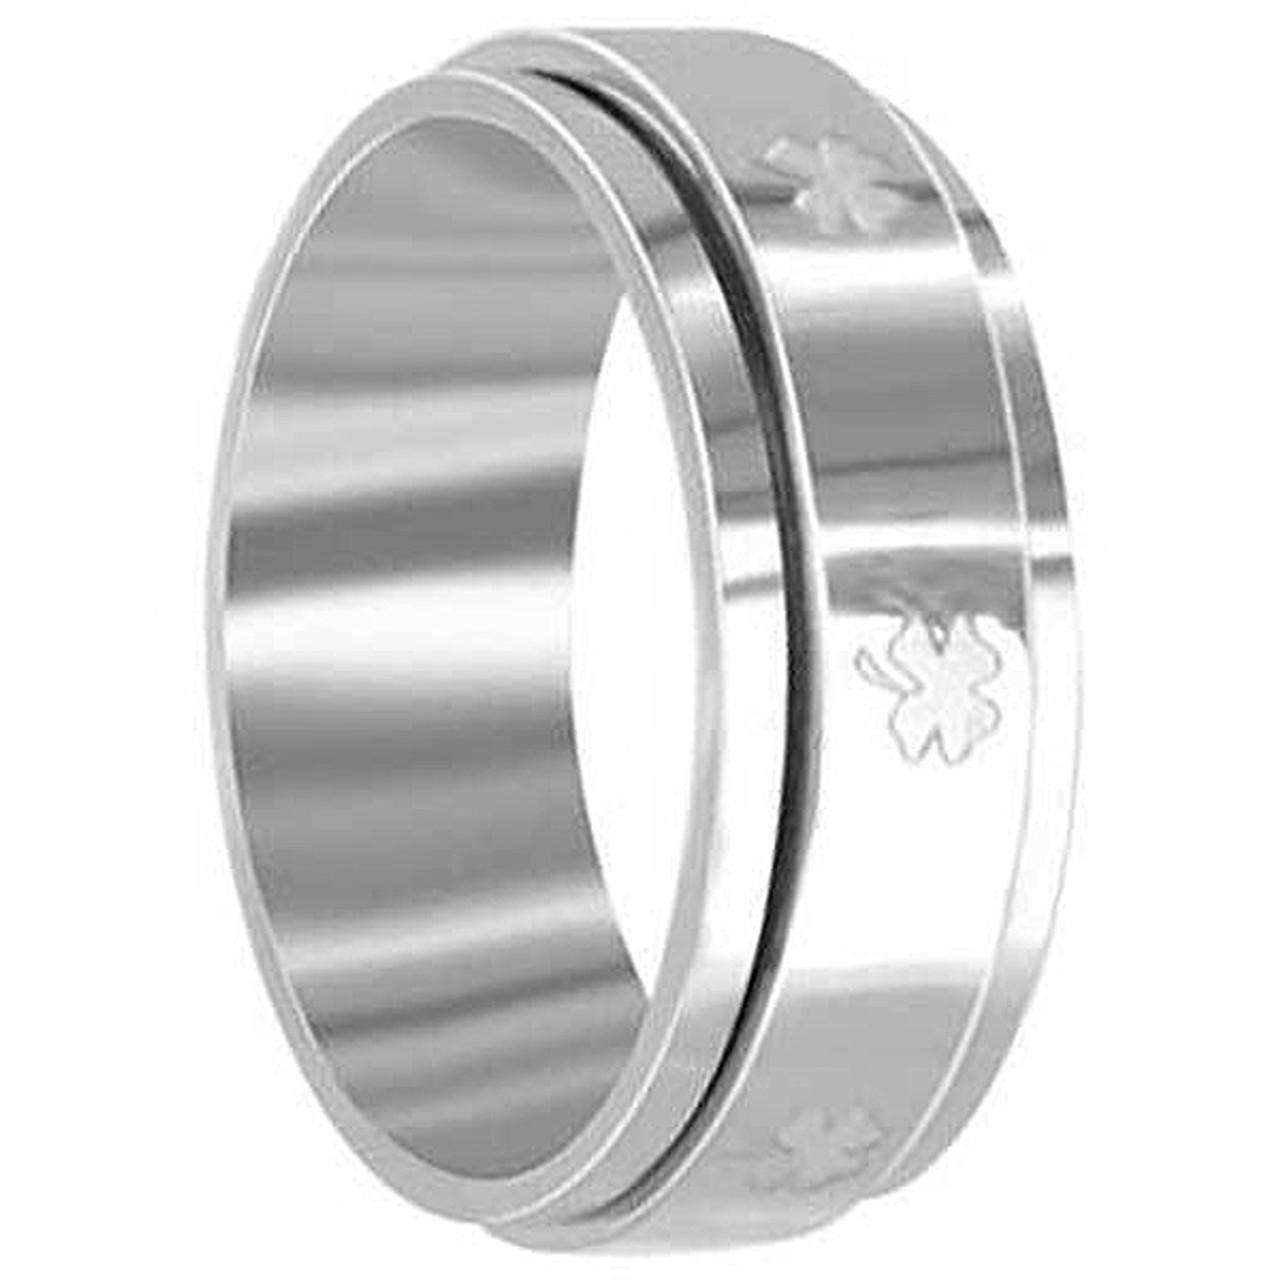 Stainless Steel 8mm Spinner Band with Lucky Four Leaf Clover Engraved